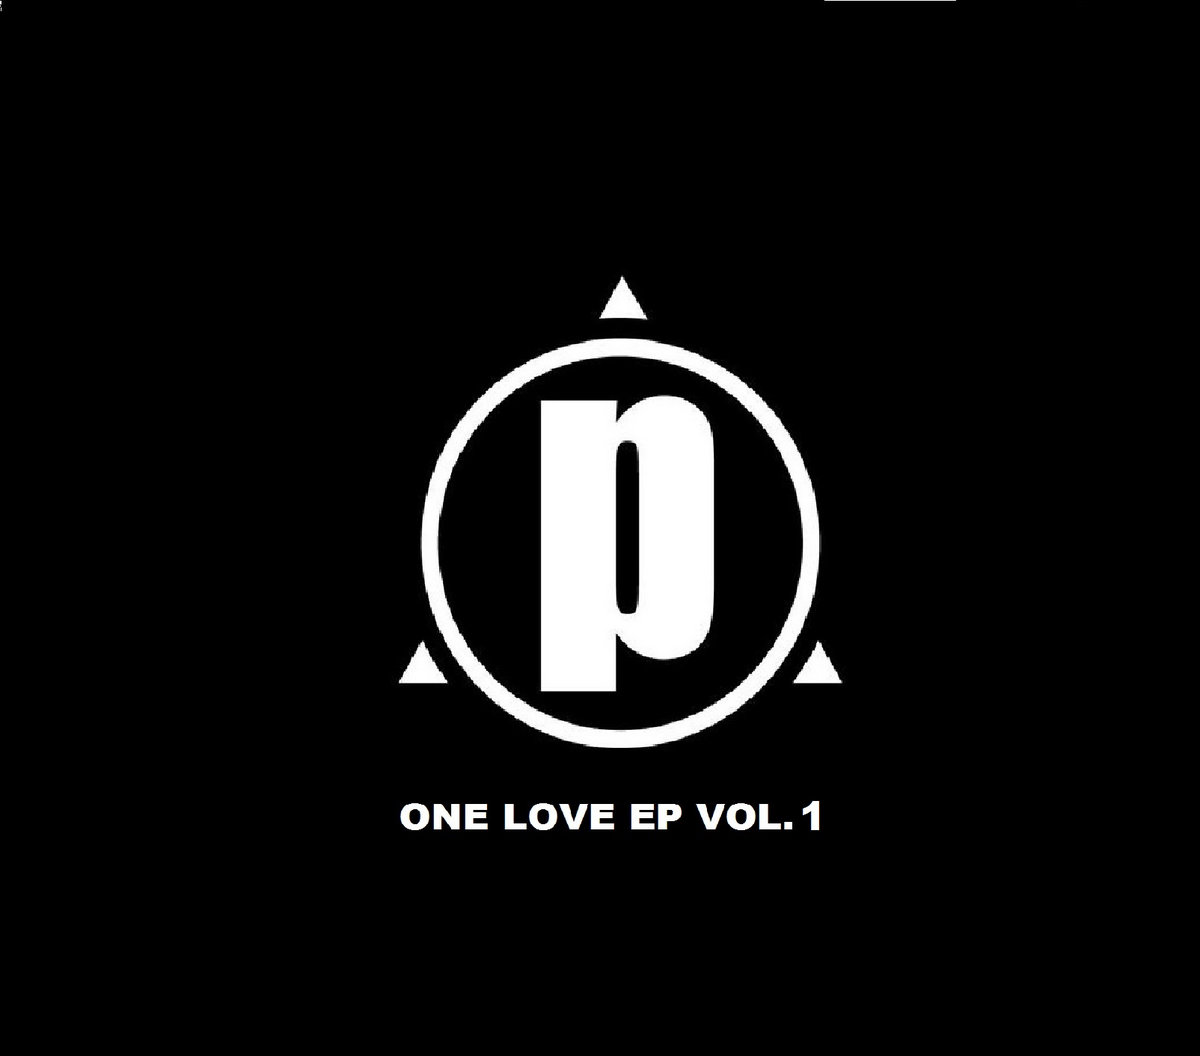 One Love Ep Vol 1 Ric Pulse